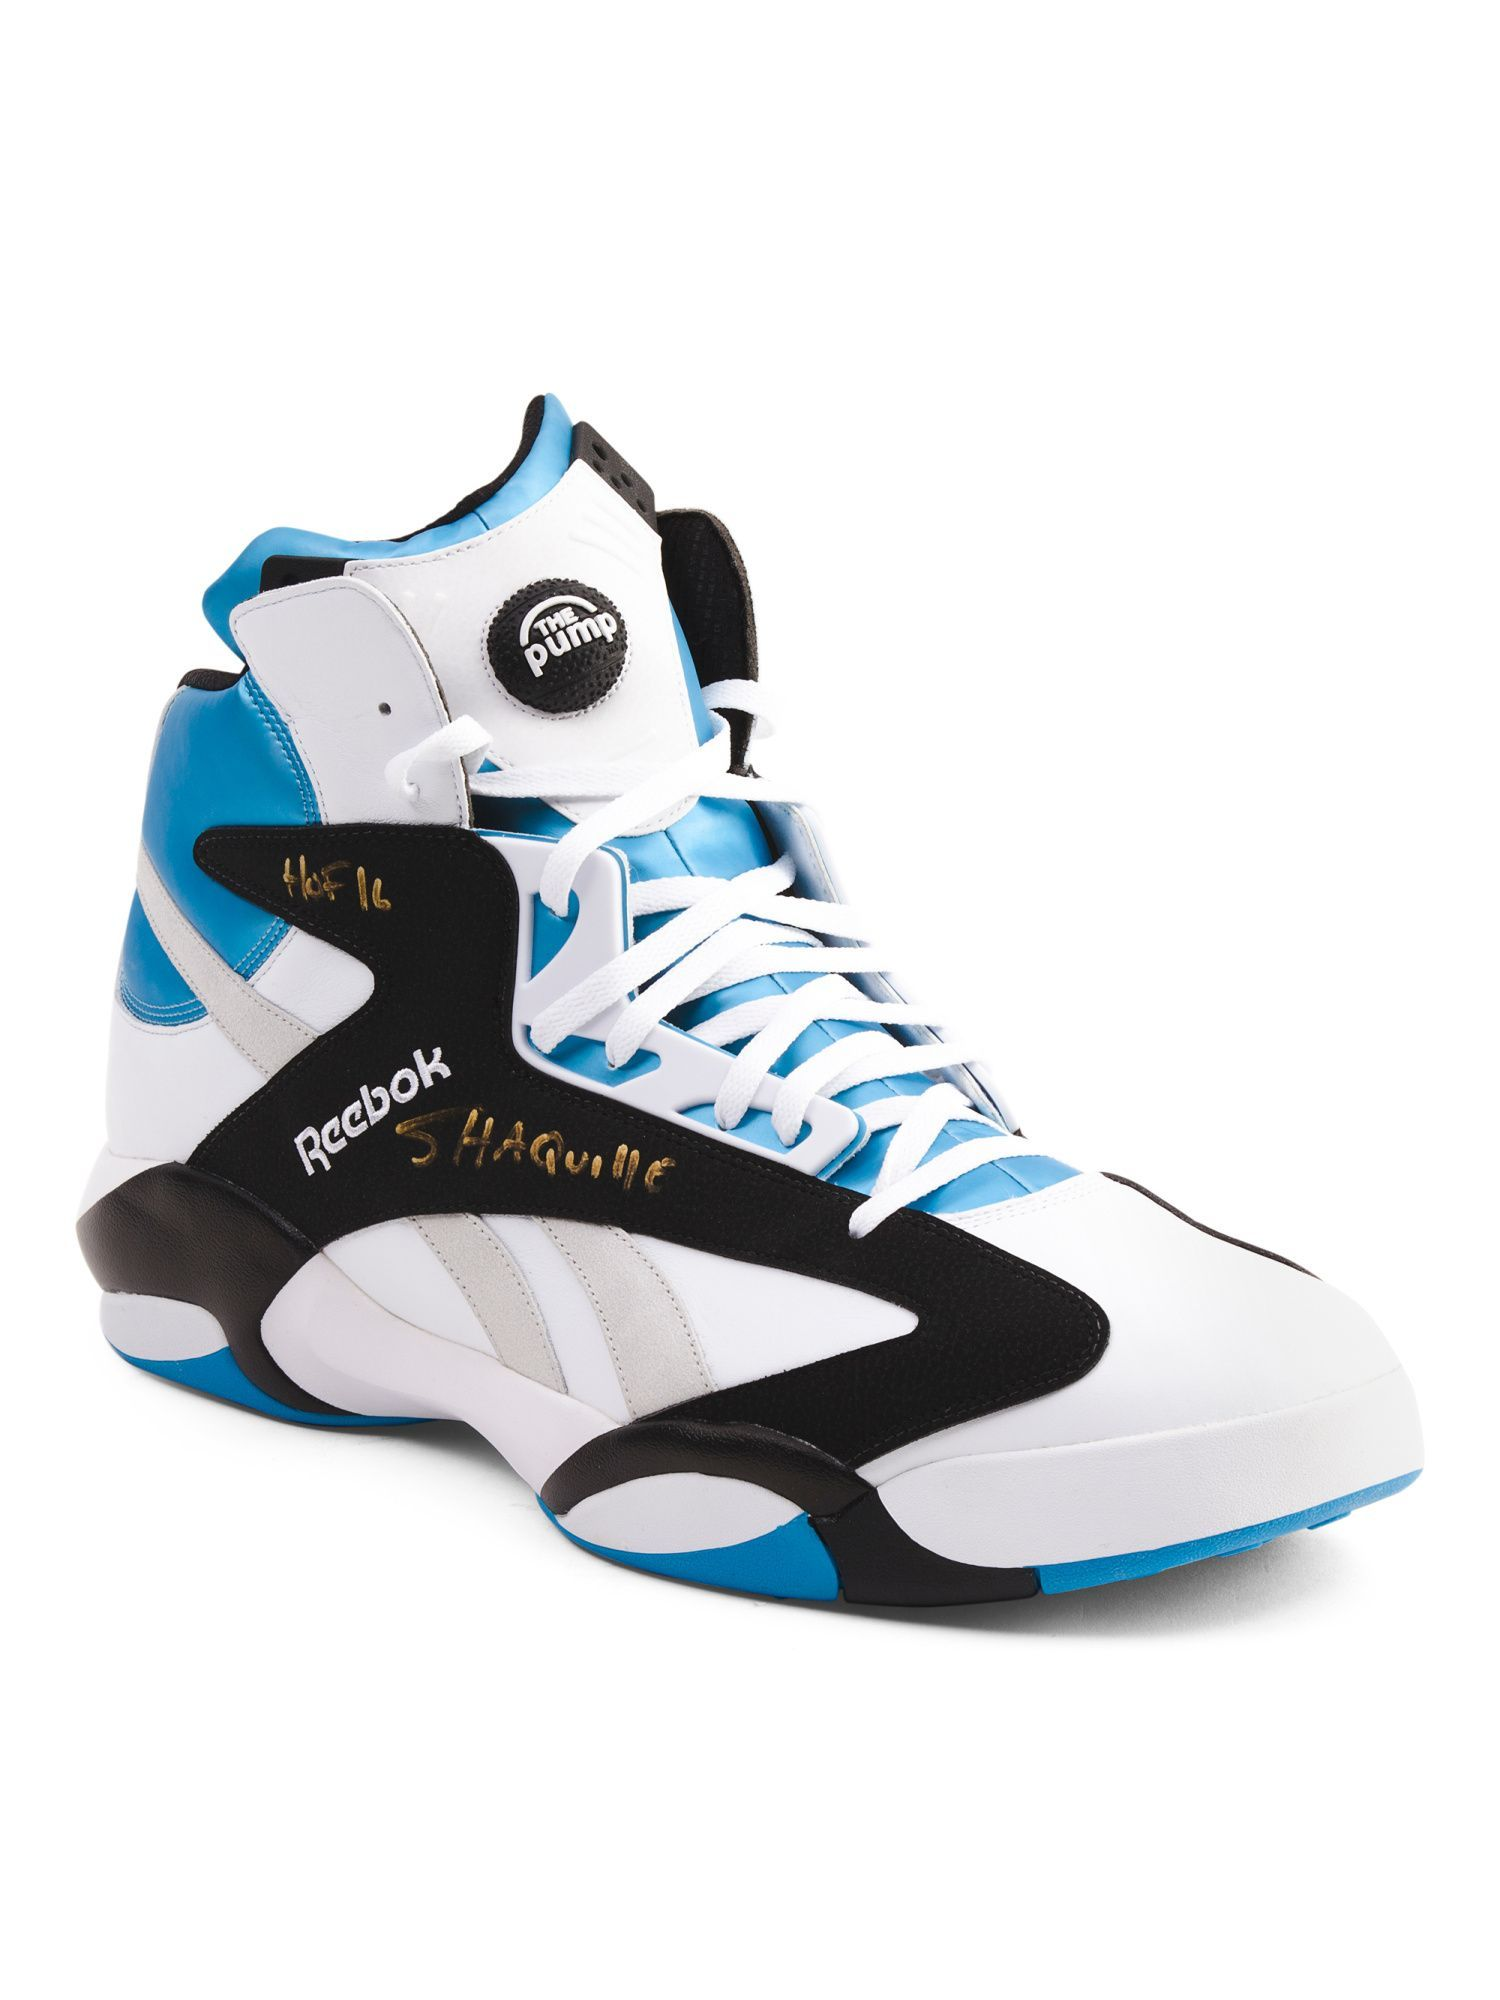 b521313707bcc Shaquille O'Neal Signed Sneaker | Products | Sneakers, Shaquille o ...